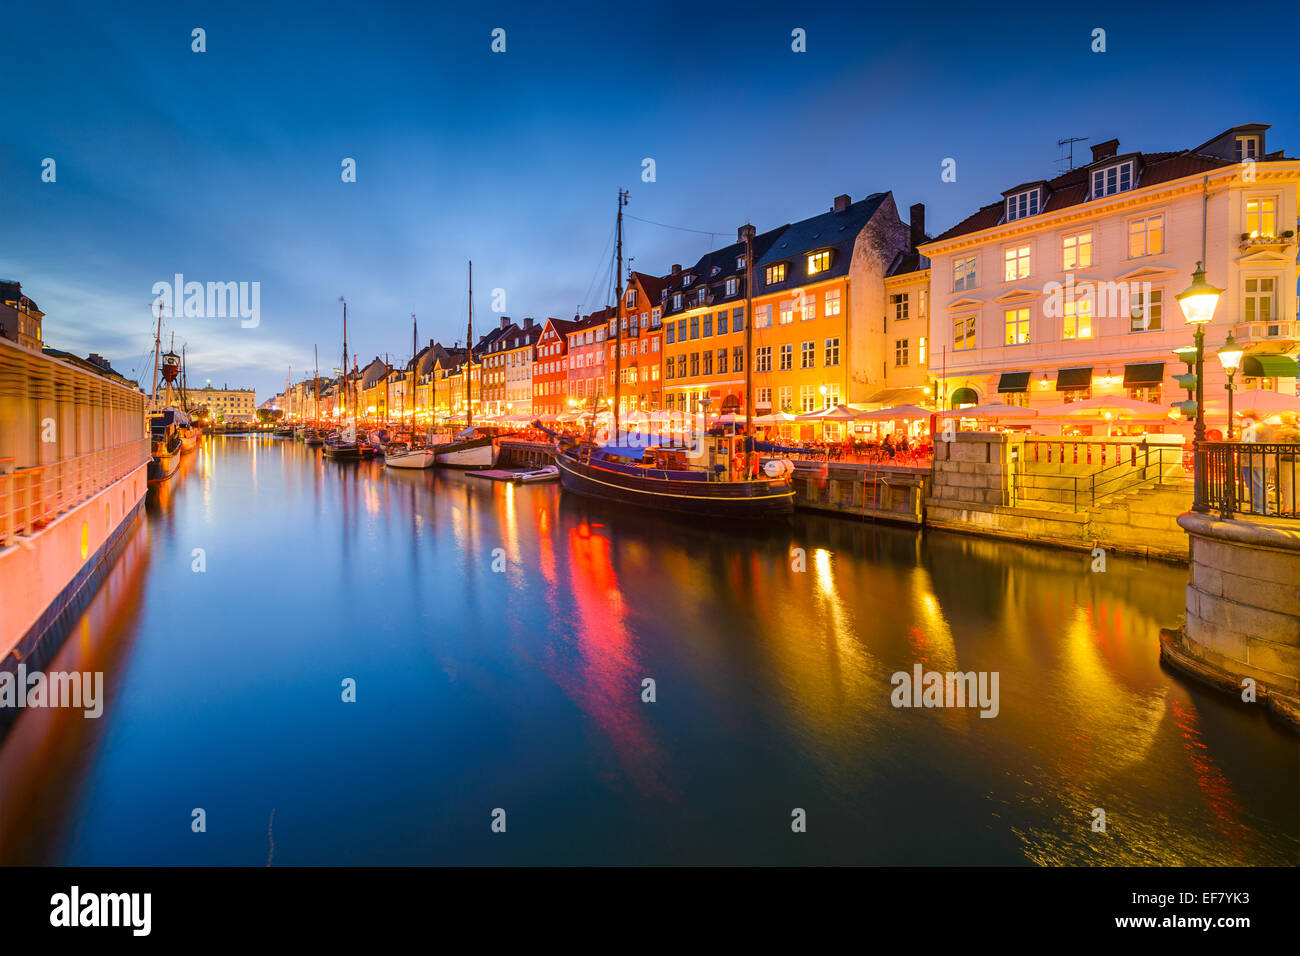 Copenhague, Danemark au Canal Nyhavn. Photo Stock